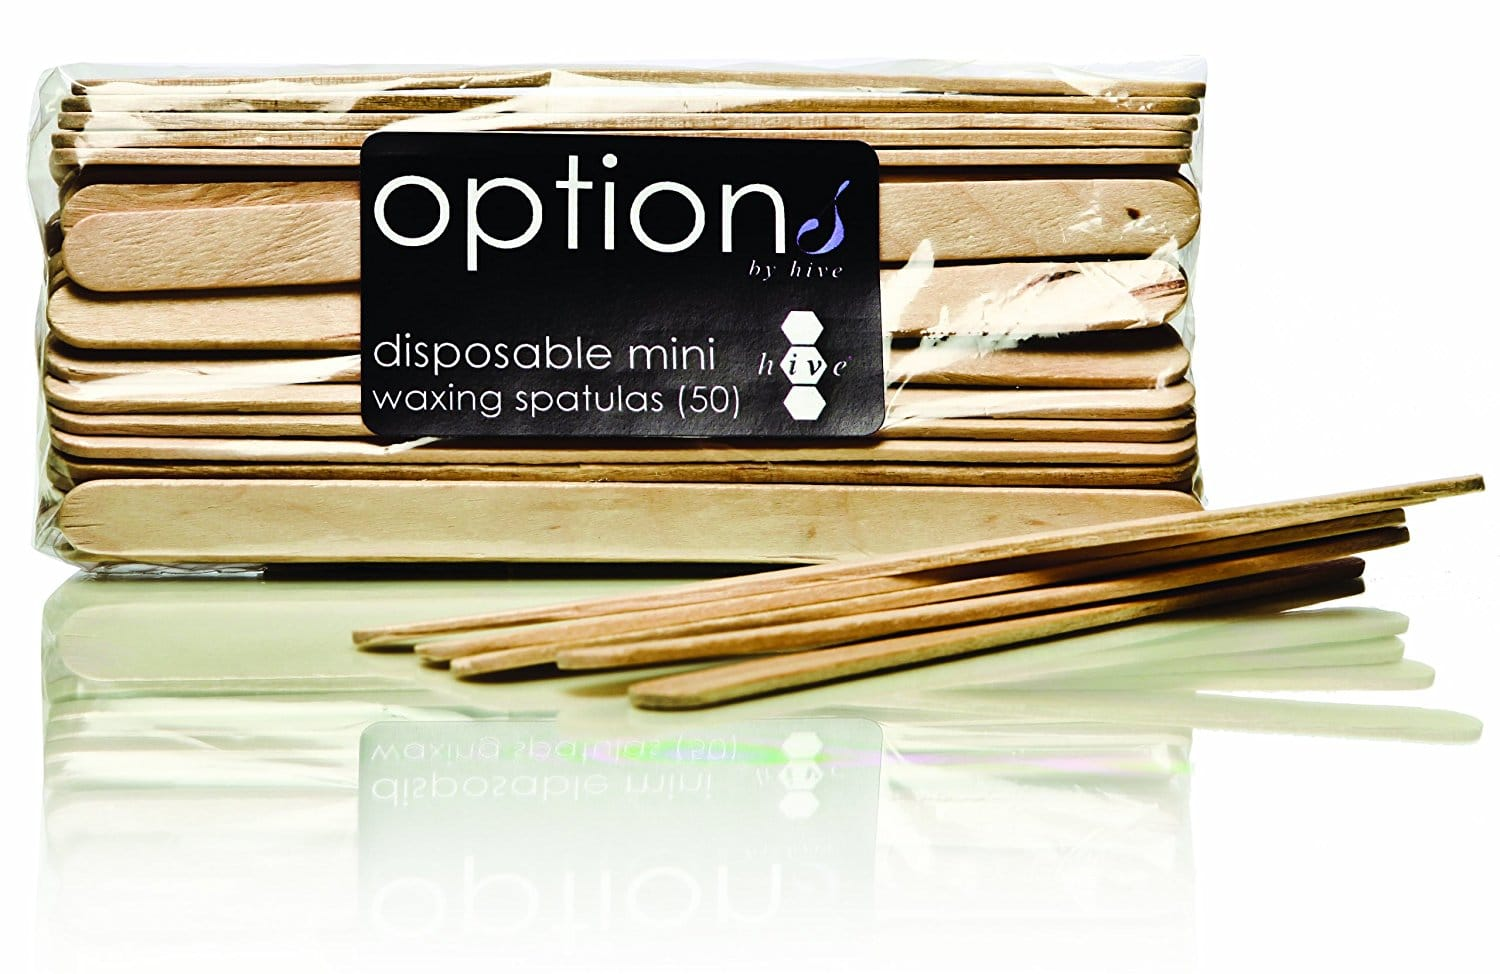 Hive Options Mini Disposable Waxing Spatulas (Pack of 100)